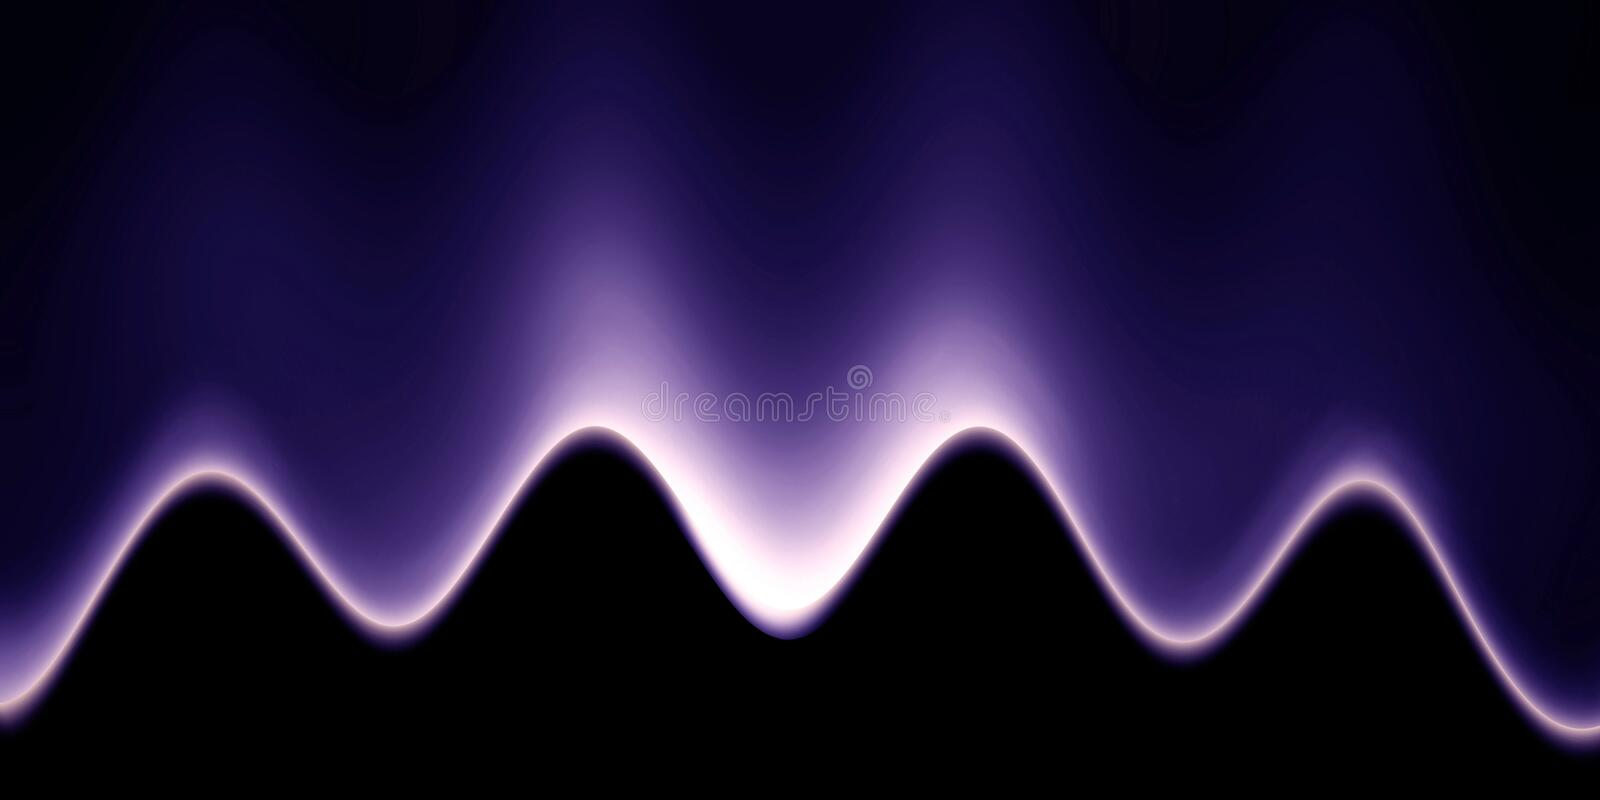 Abstract sound wave royalty free illustration